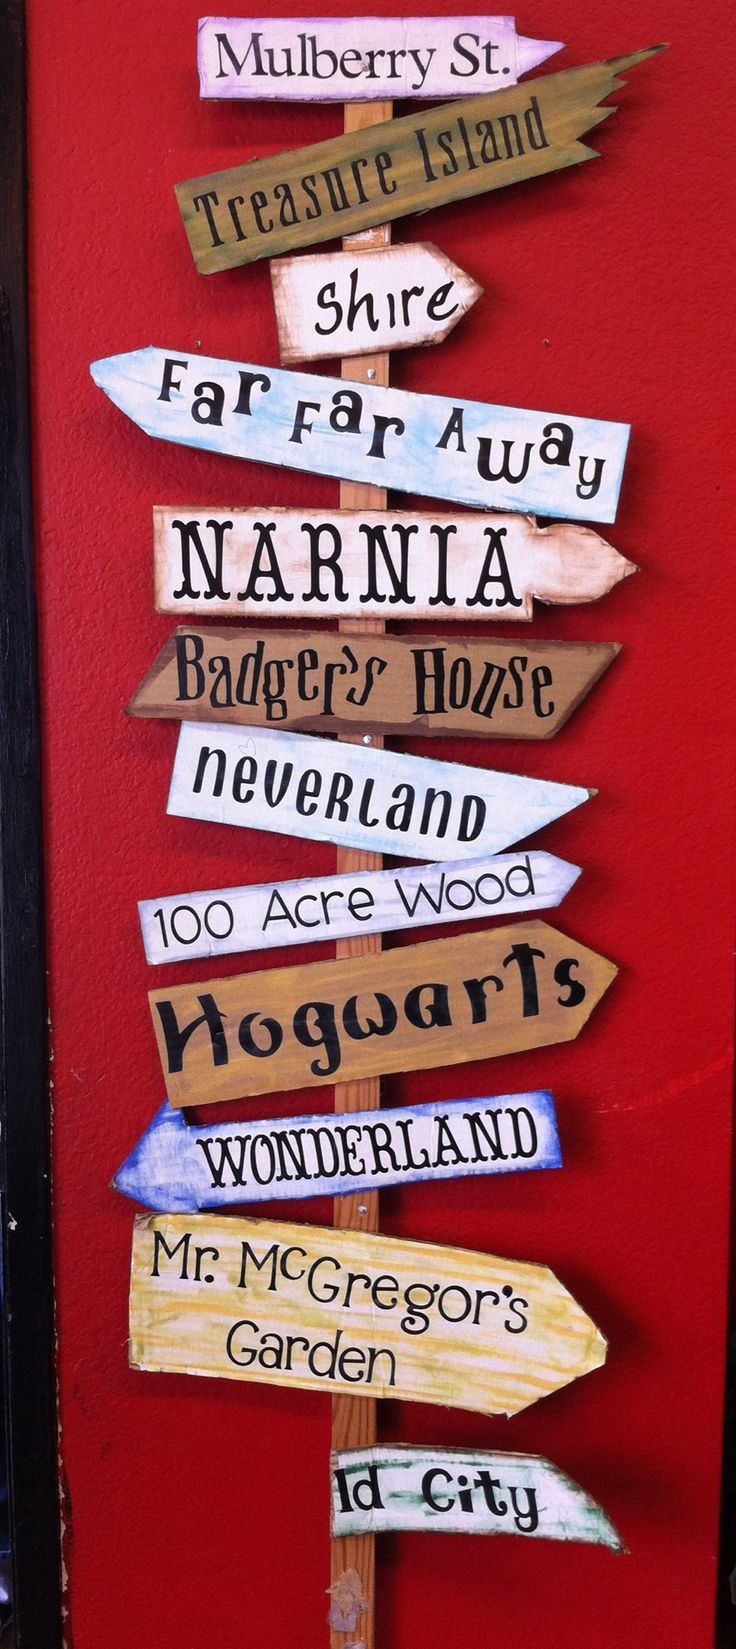 Love this! Other ideas: zuckeman's farm, sodor, toyland, From (mostly pixar) movies: paradise falls, radiator springs, Andy's room, andalasia, the drop-off, monstropolis, metroville, game central station